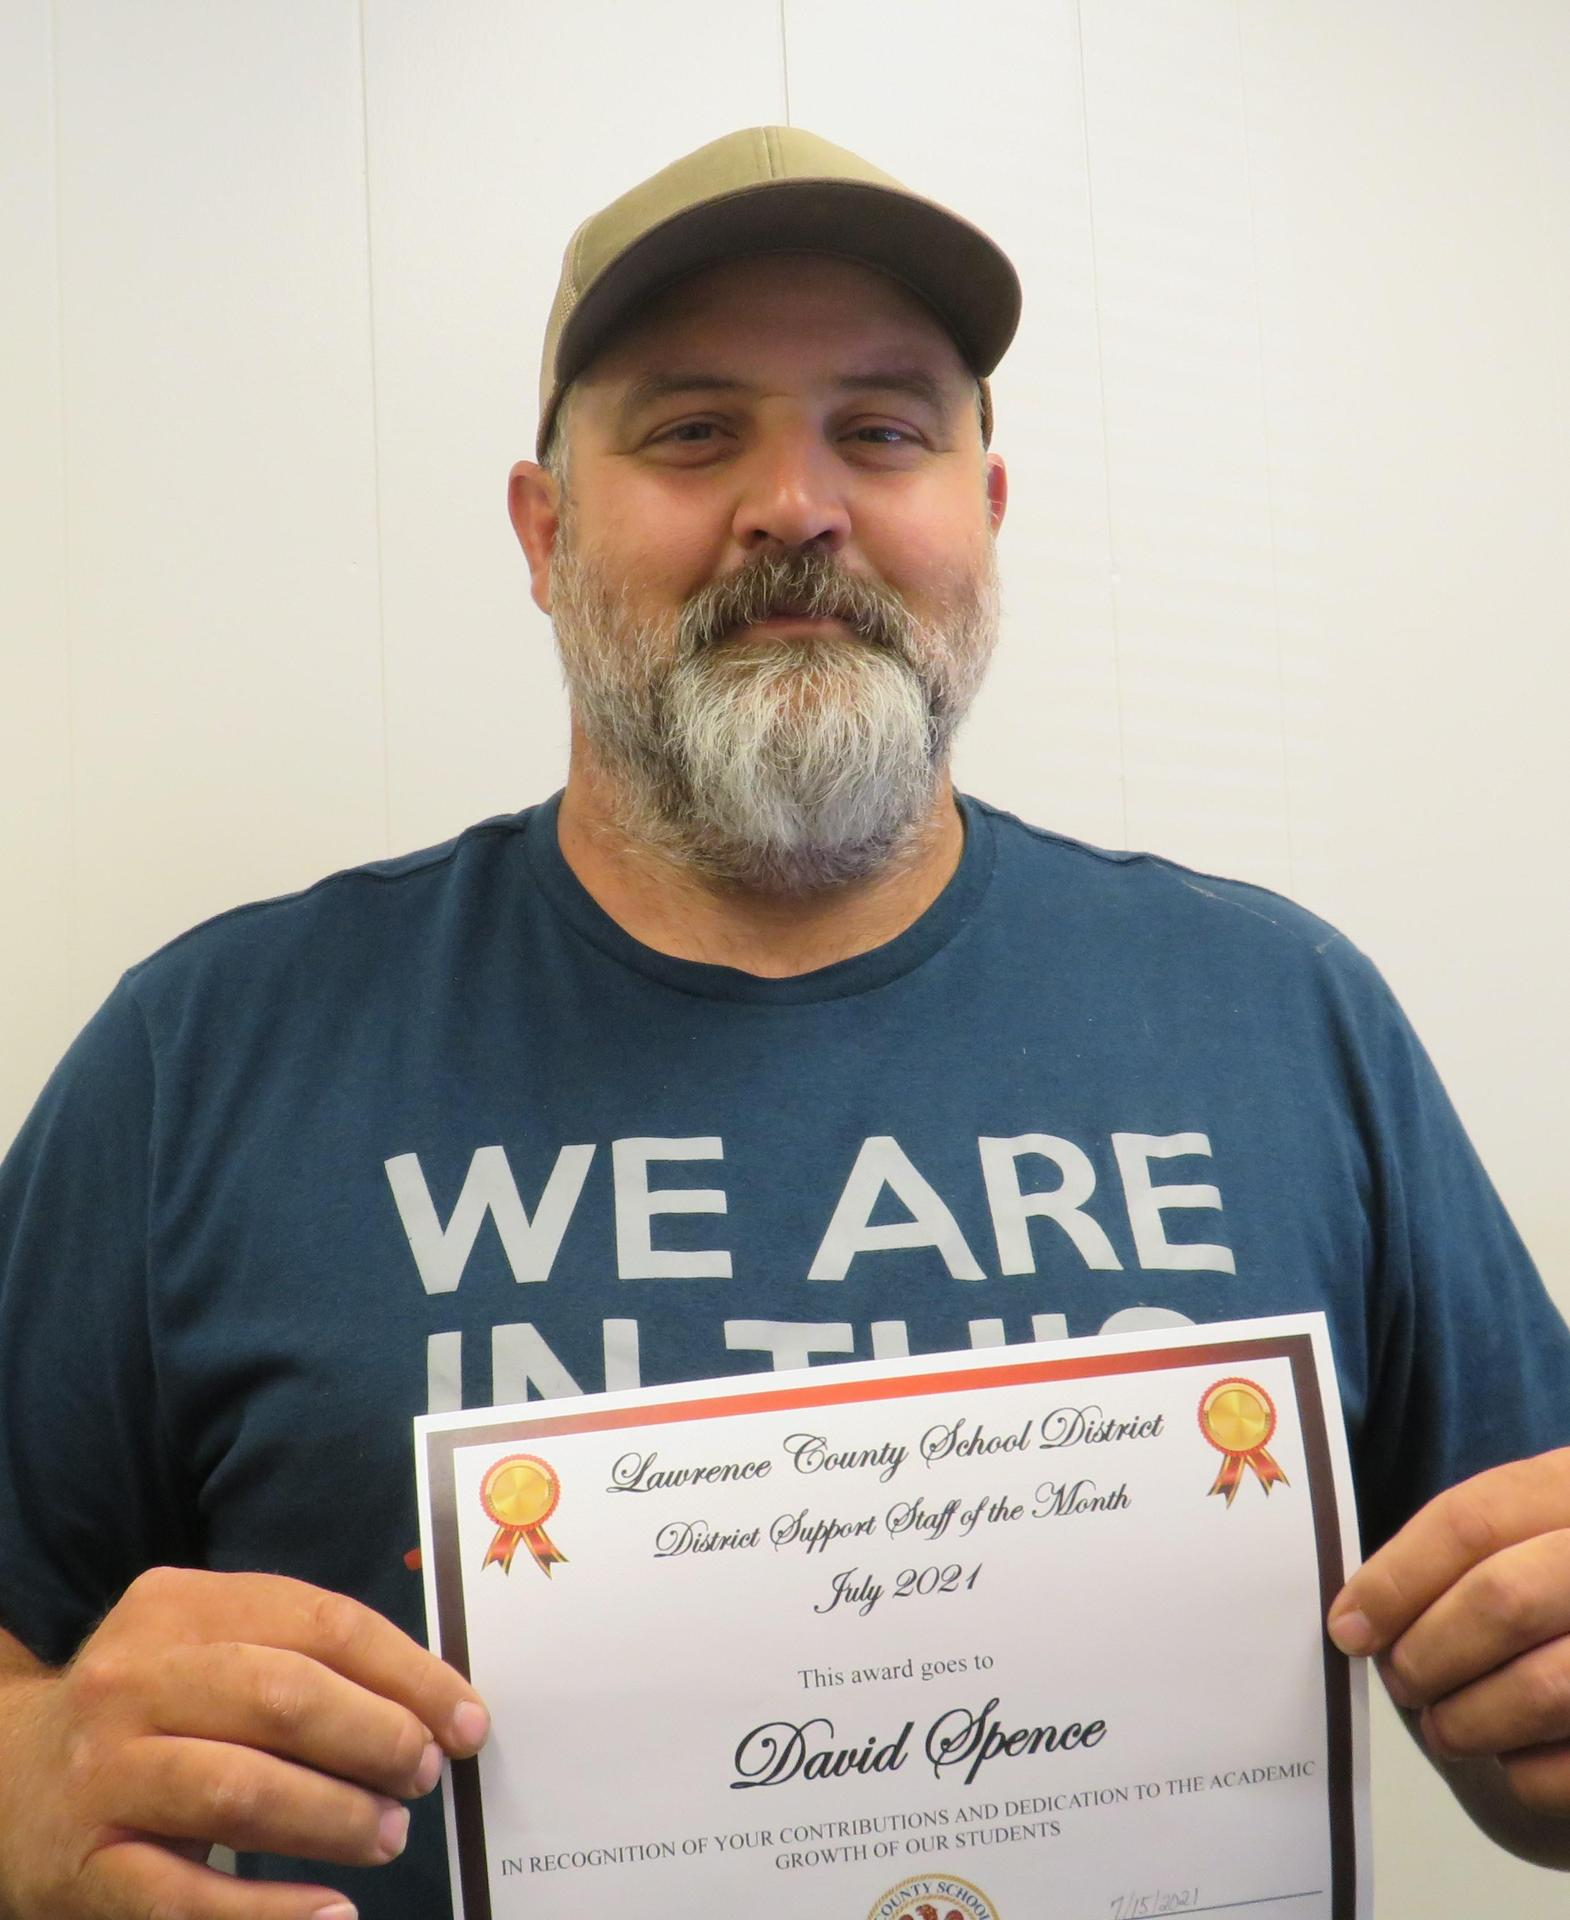 David Spence, Support Staff of the Month July 2021